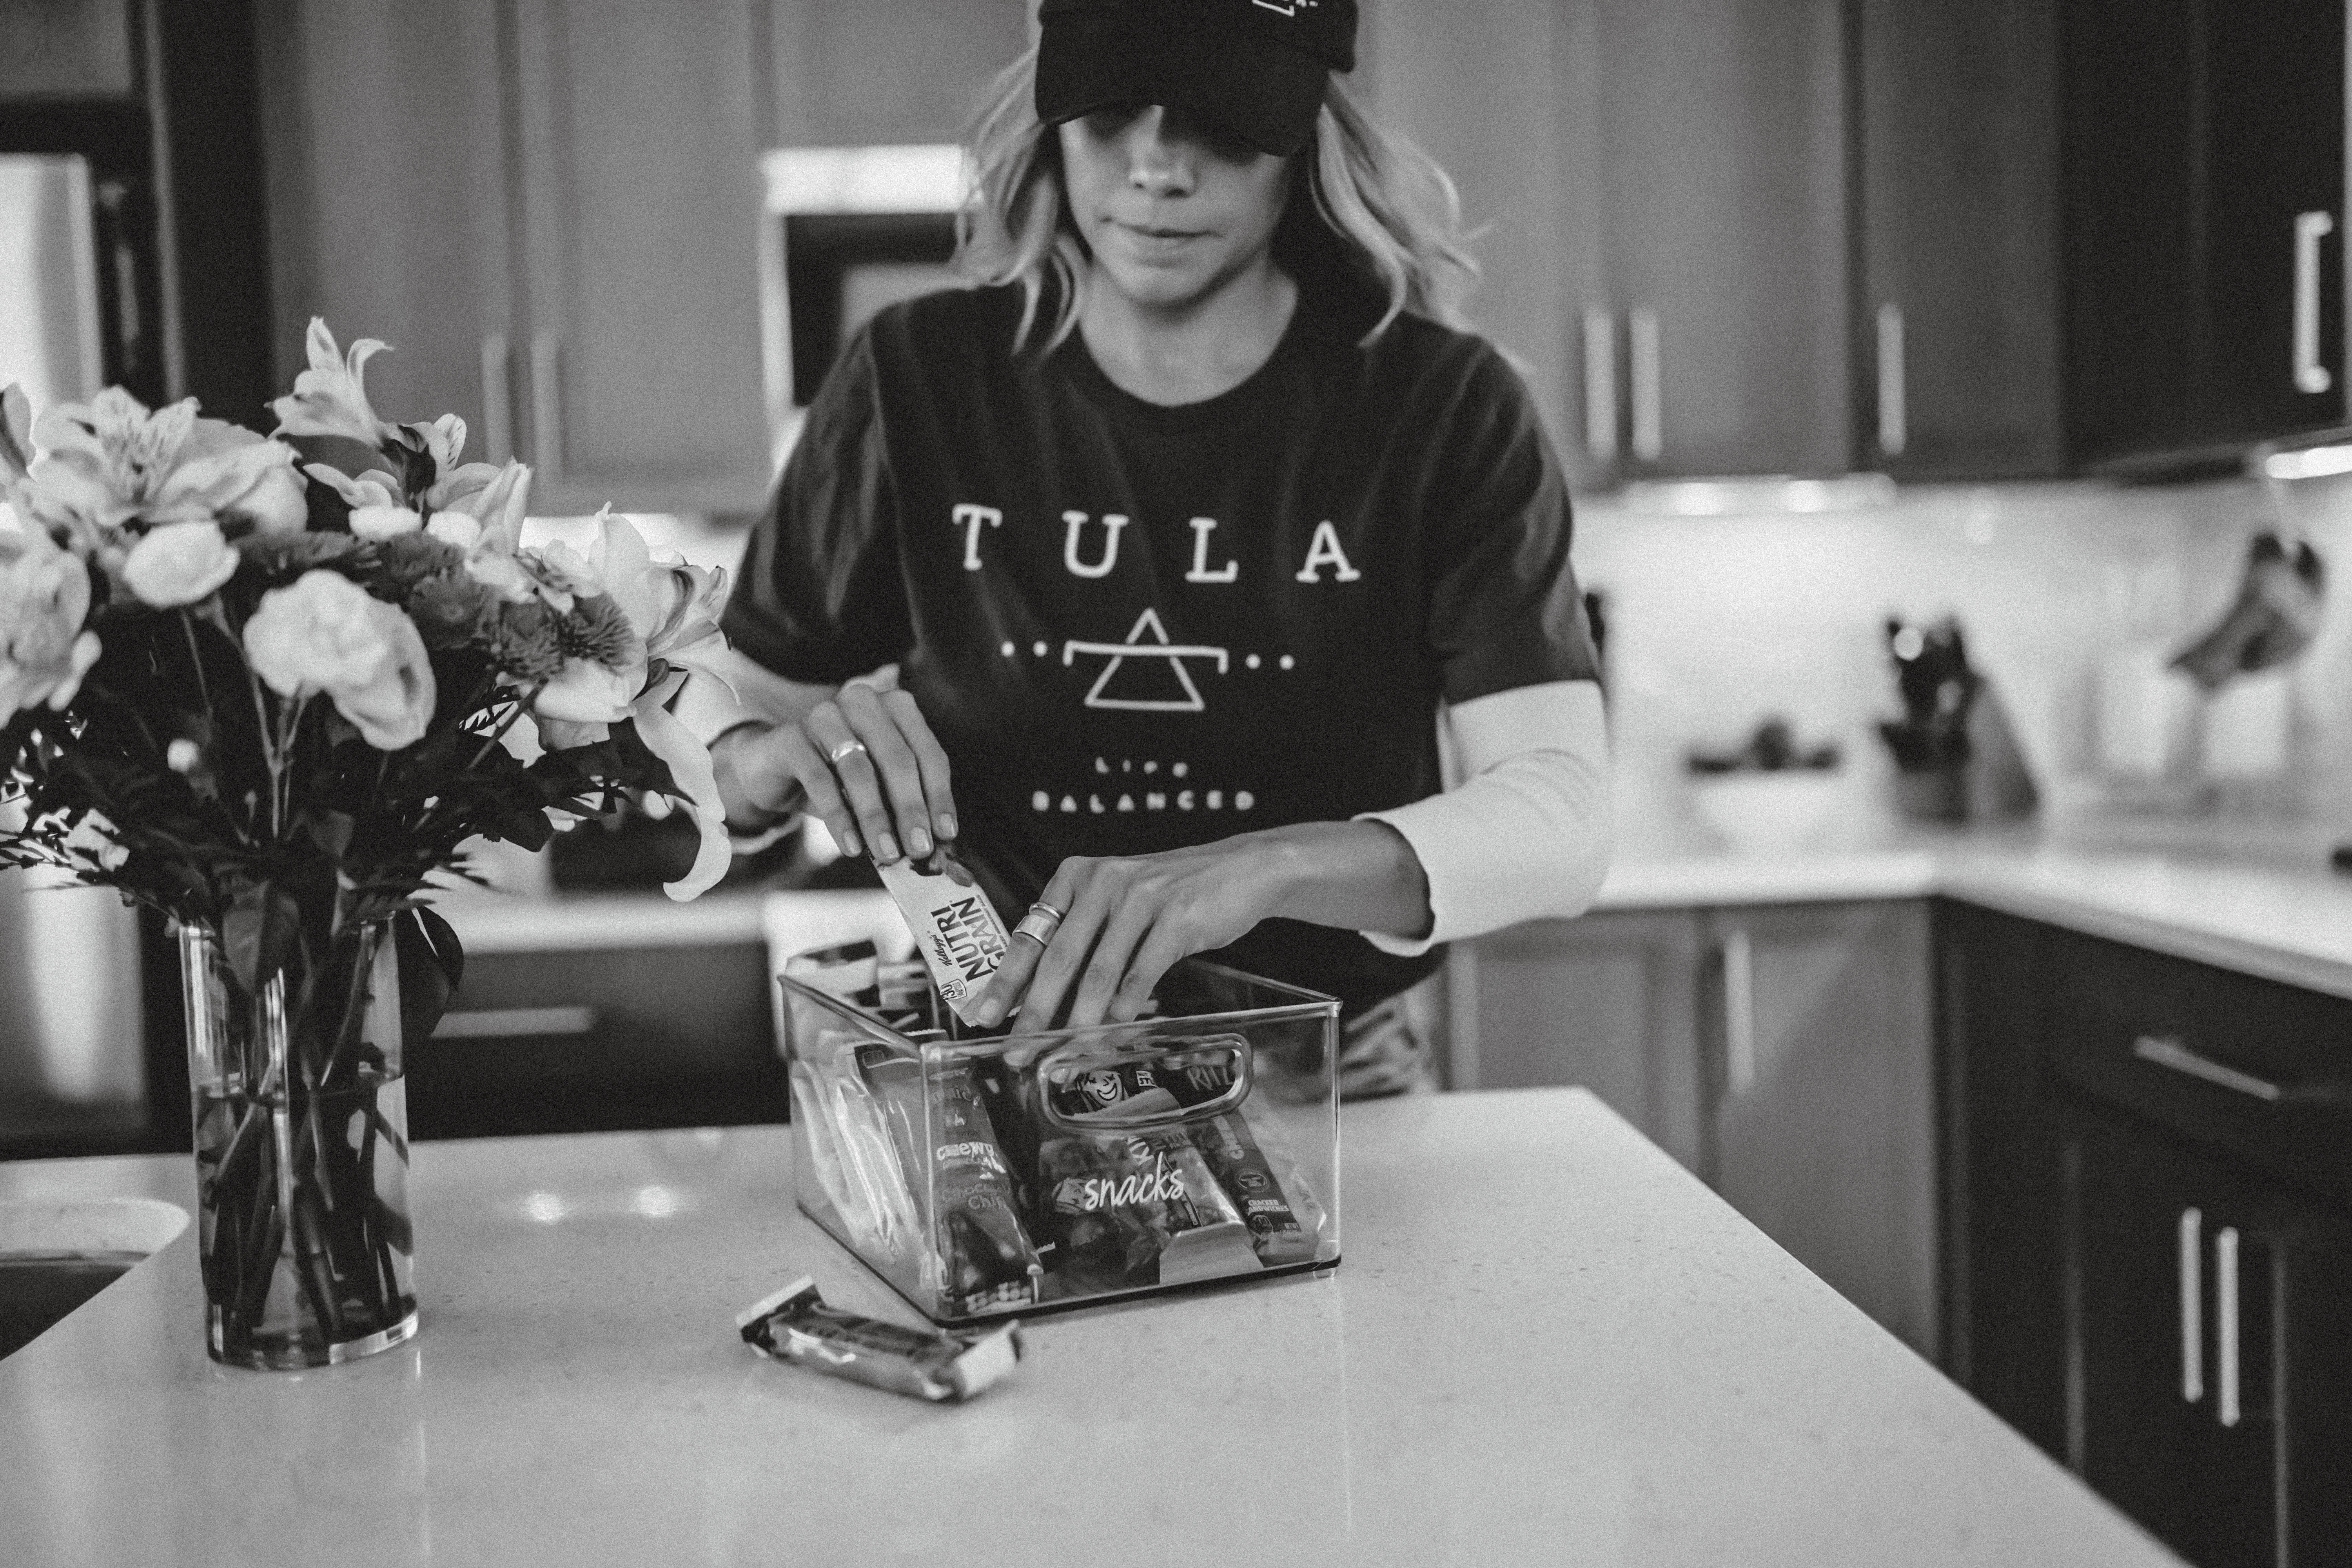 TULA Assistant wears TULA shirt and hat as she organizes a snack clear container on a white countertop next to a vase of flowers